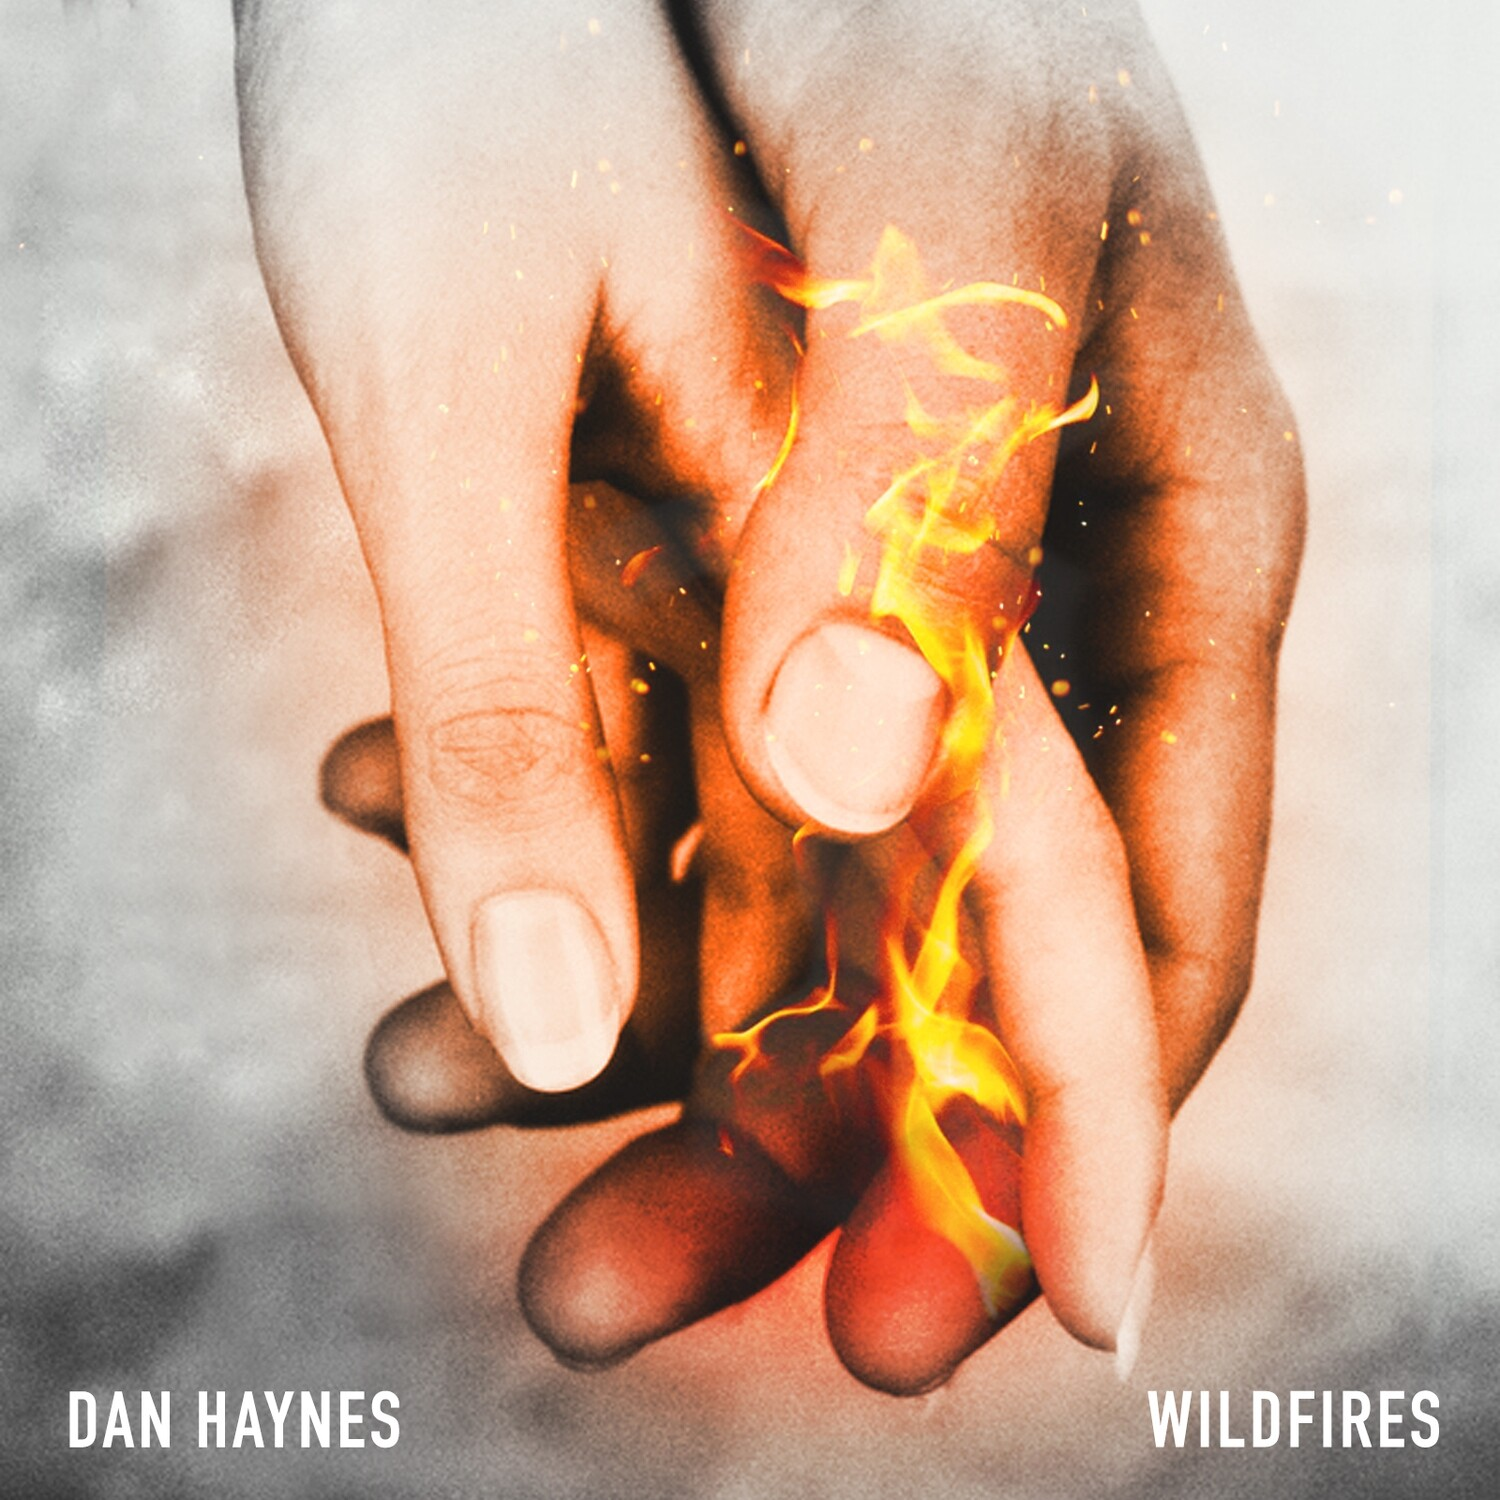 Wildfires EP (CD Includes 3 exclusive bonus tracks)